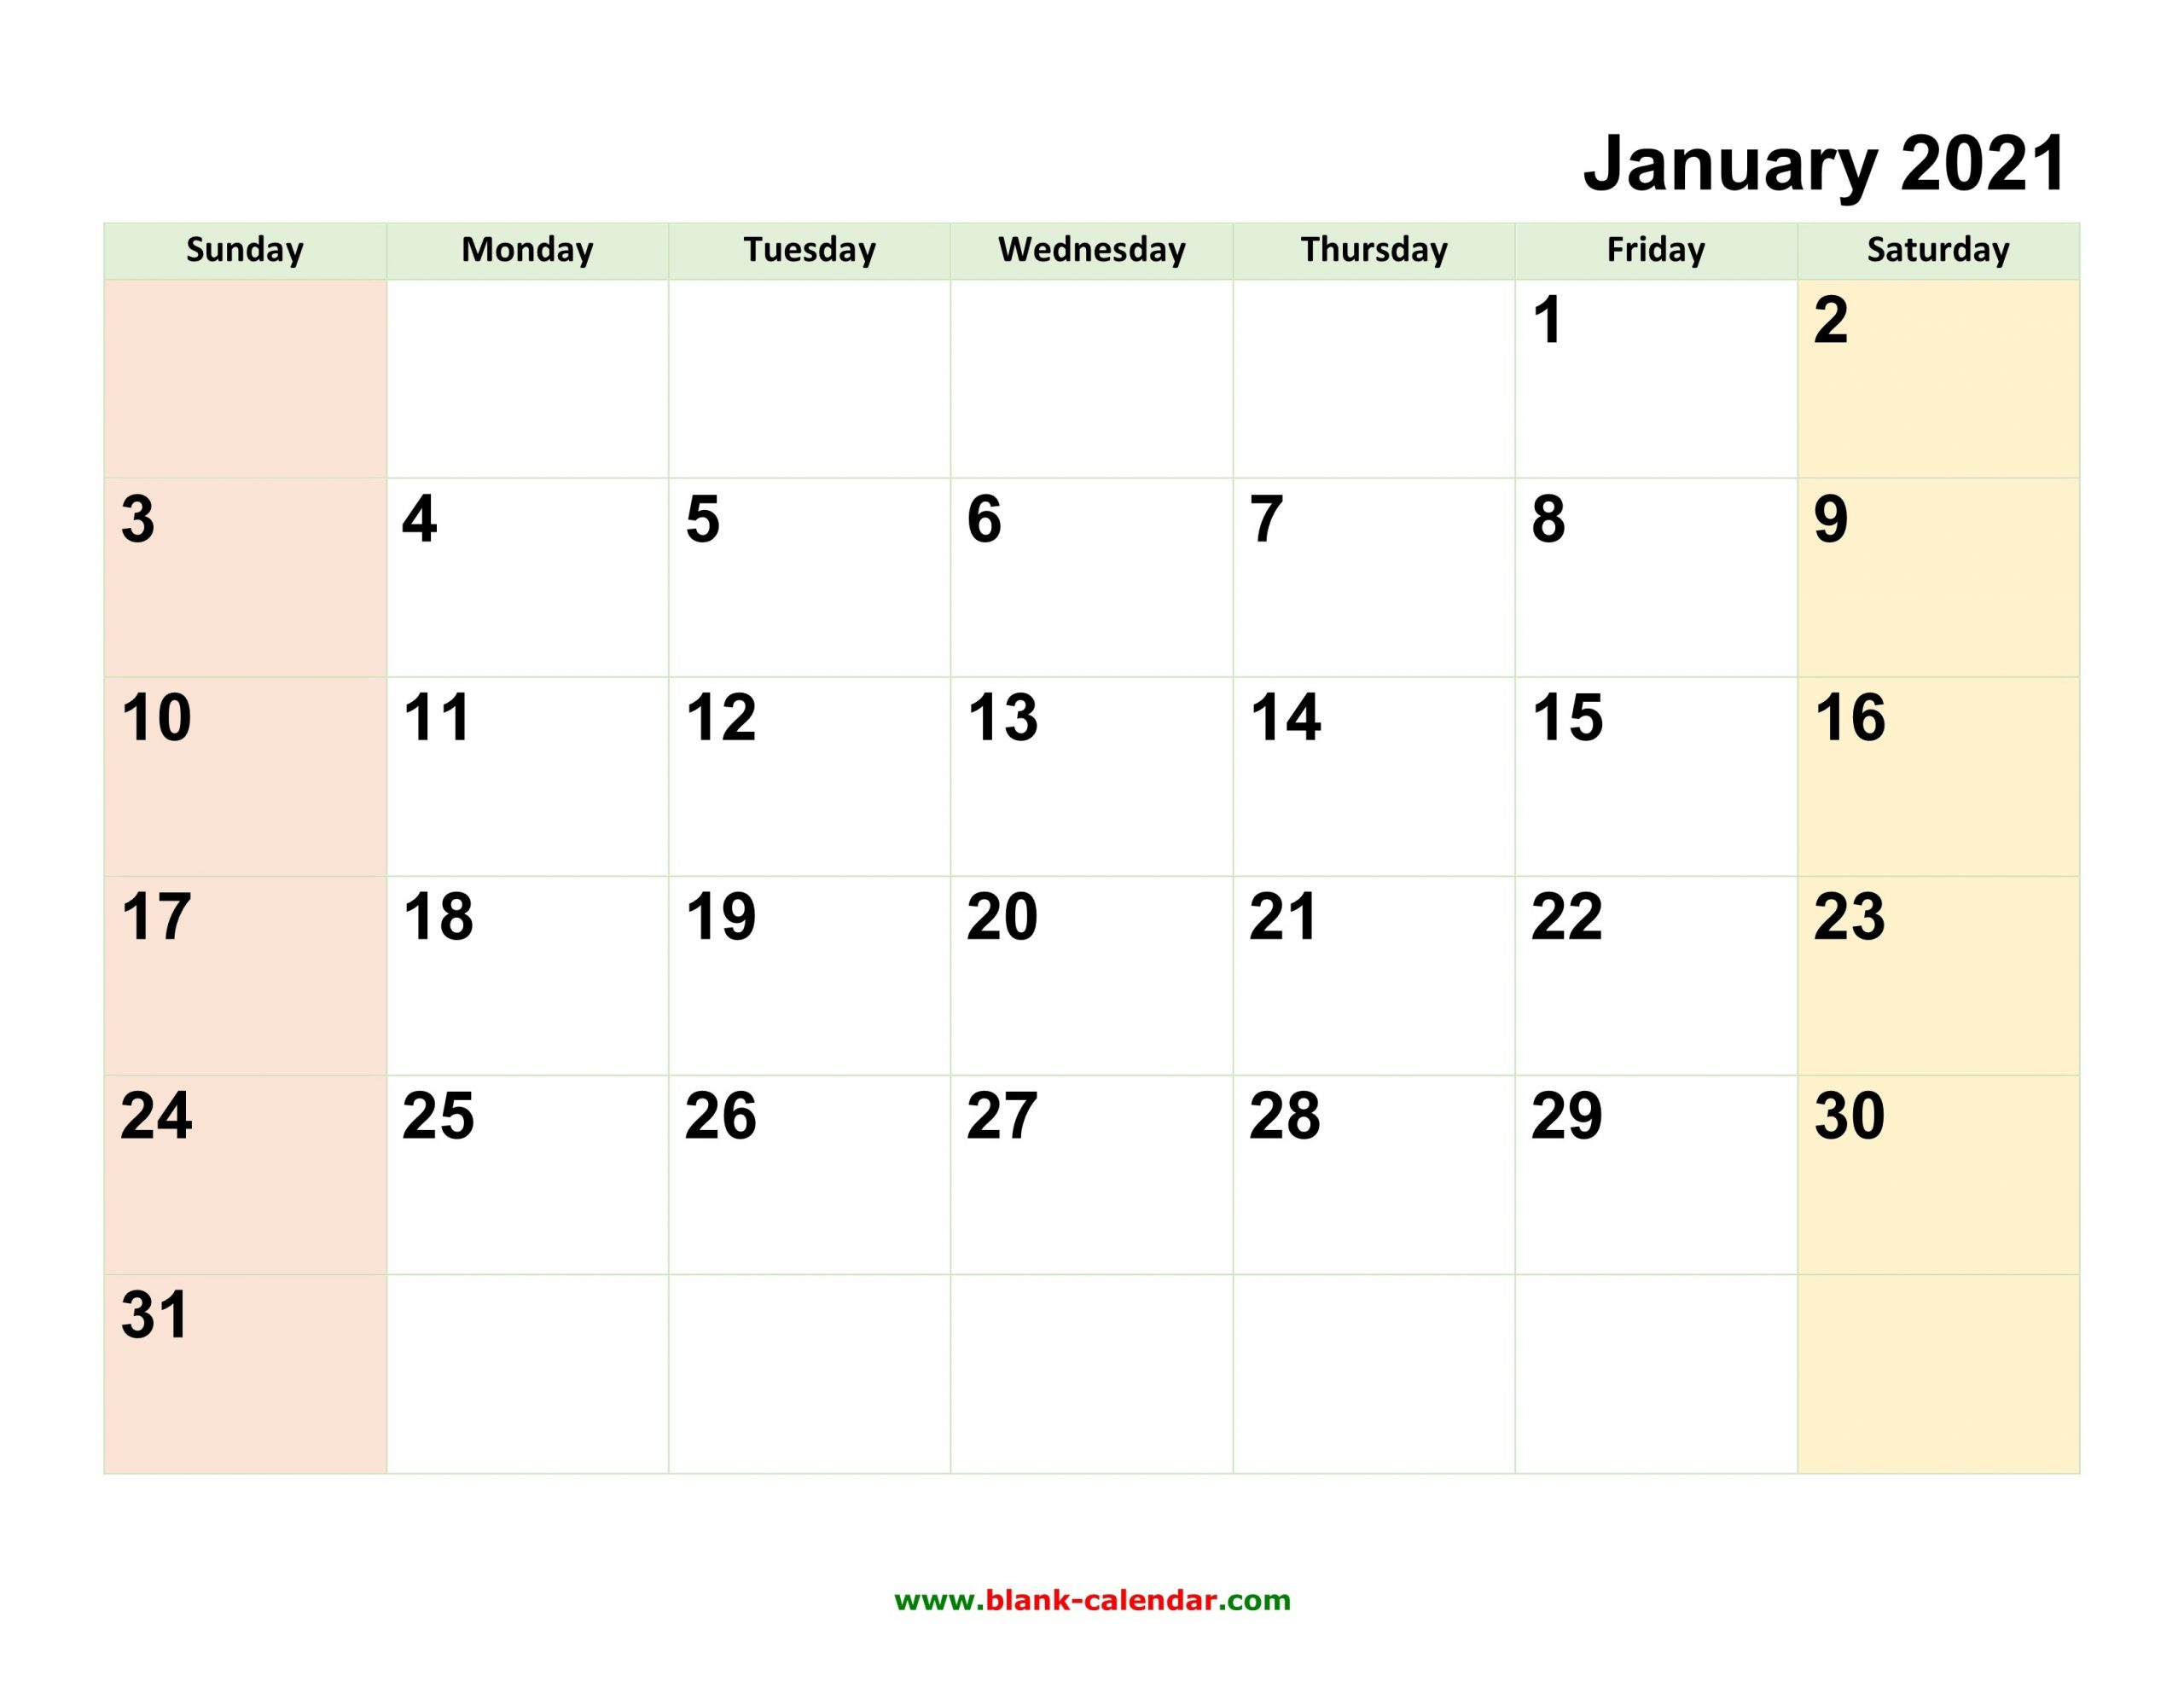 Monthly Calendar 2021 | Free Download, Editable And Printable-2021 Monthly Calendar Template Word